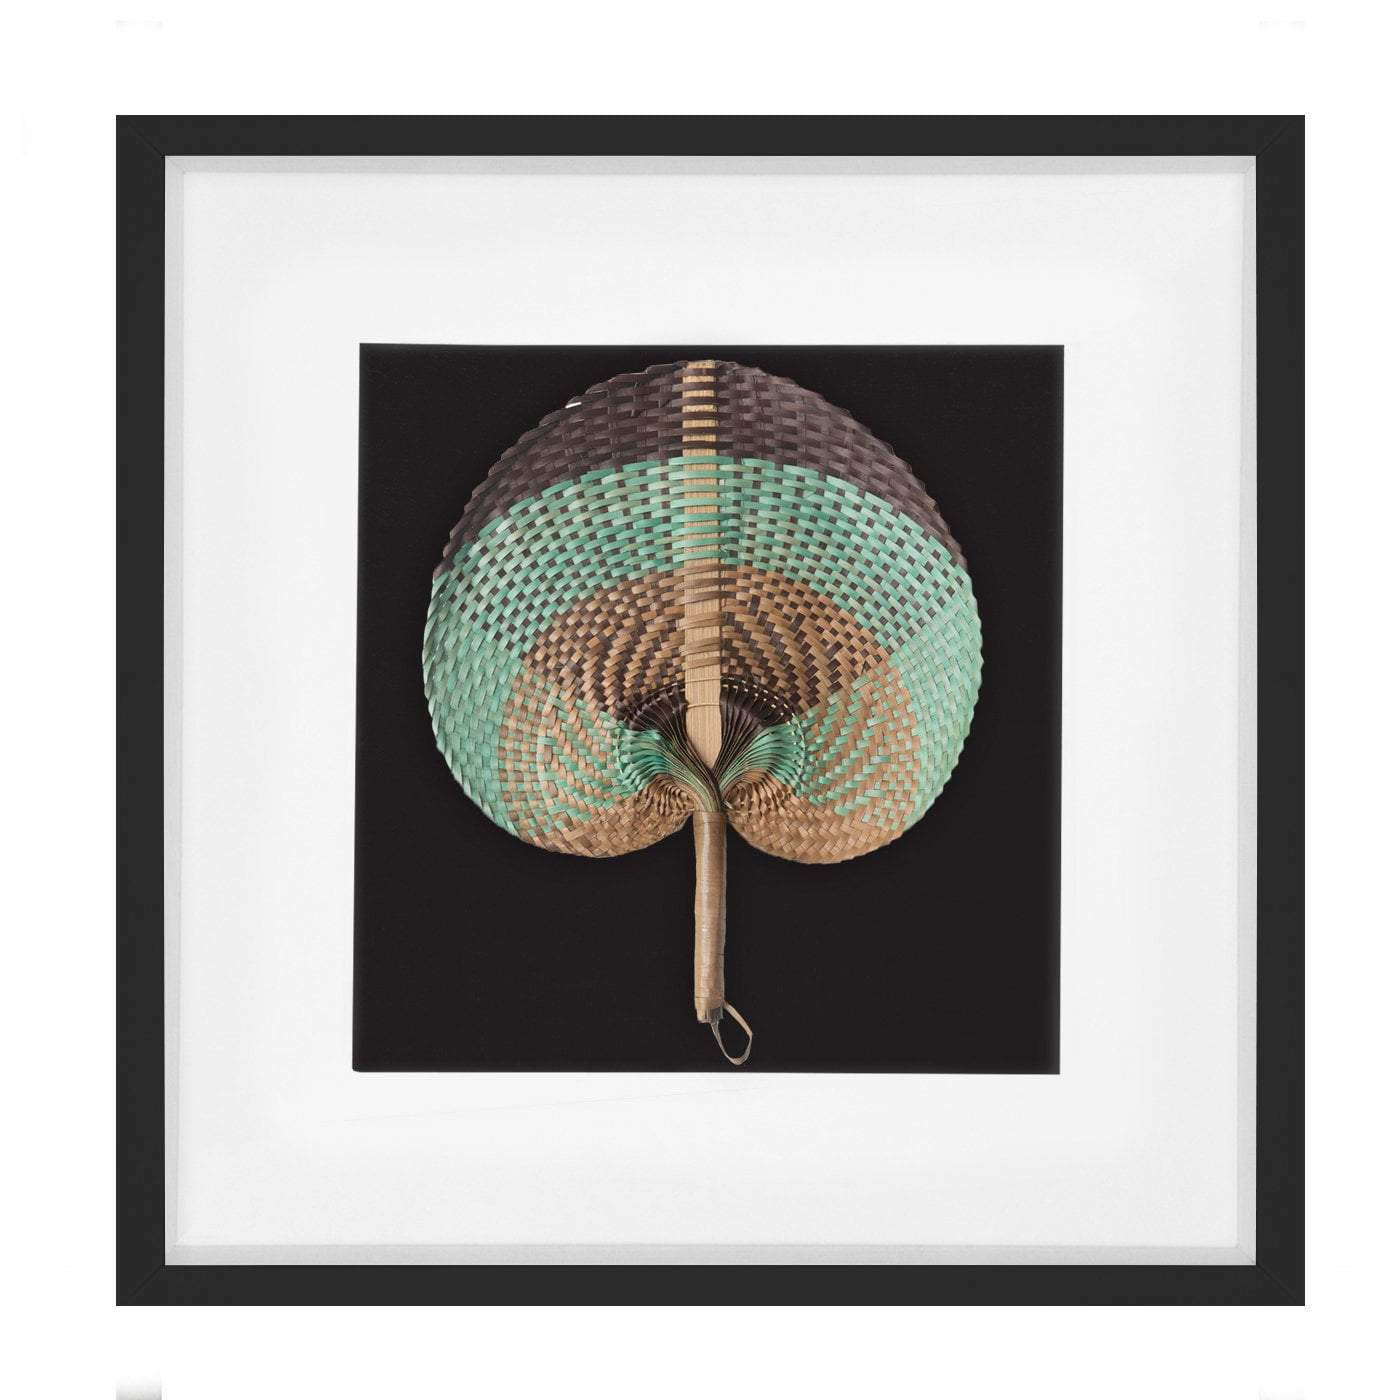 Bandhini Homewear Design Artwork Natural / Surf Tribe / 22 x 22 Fan Sage on Black 52x52cm